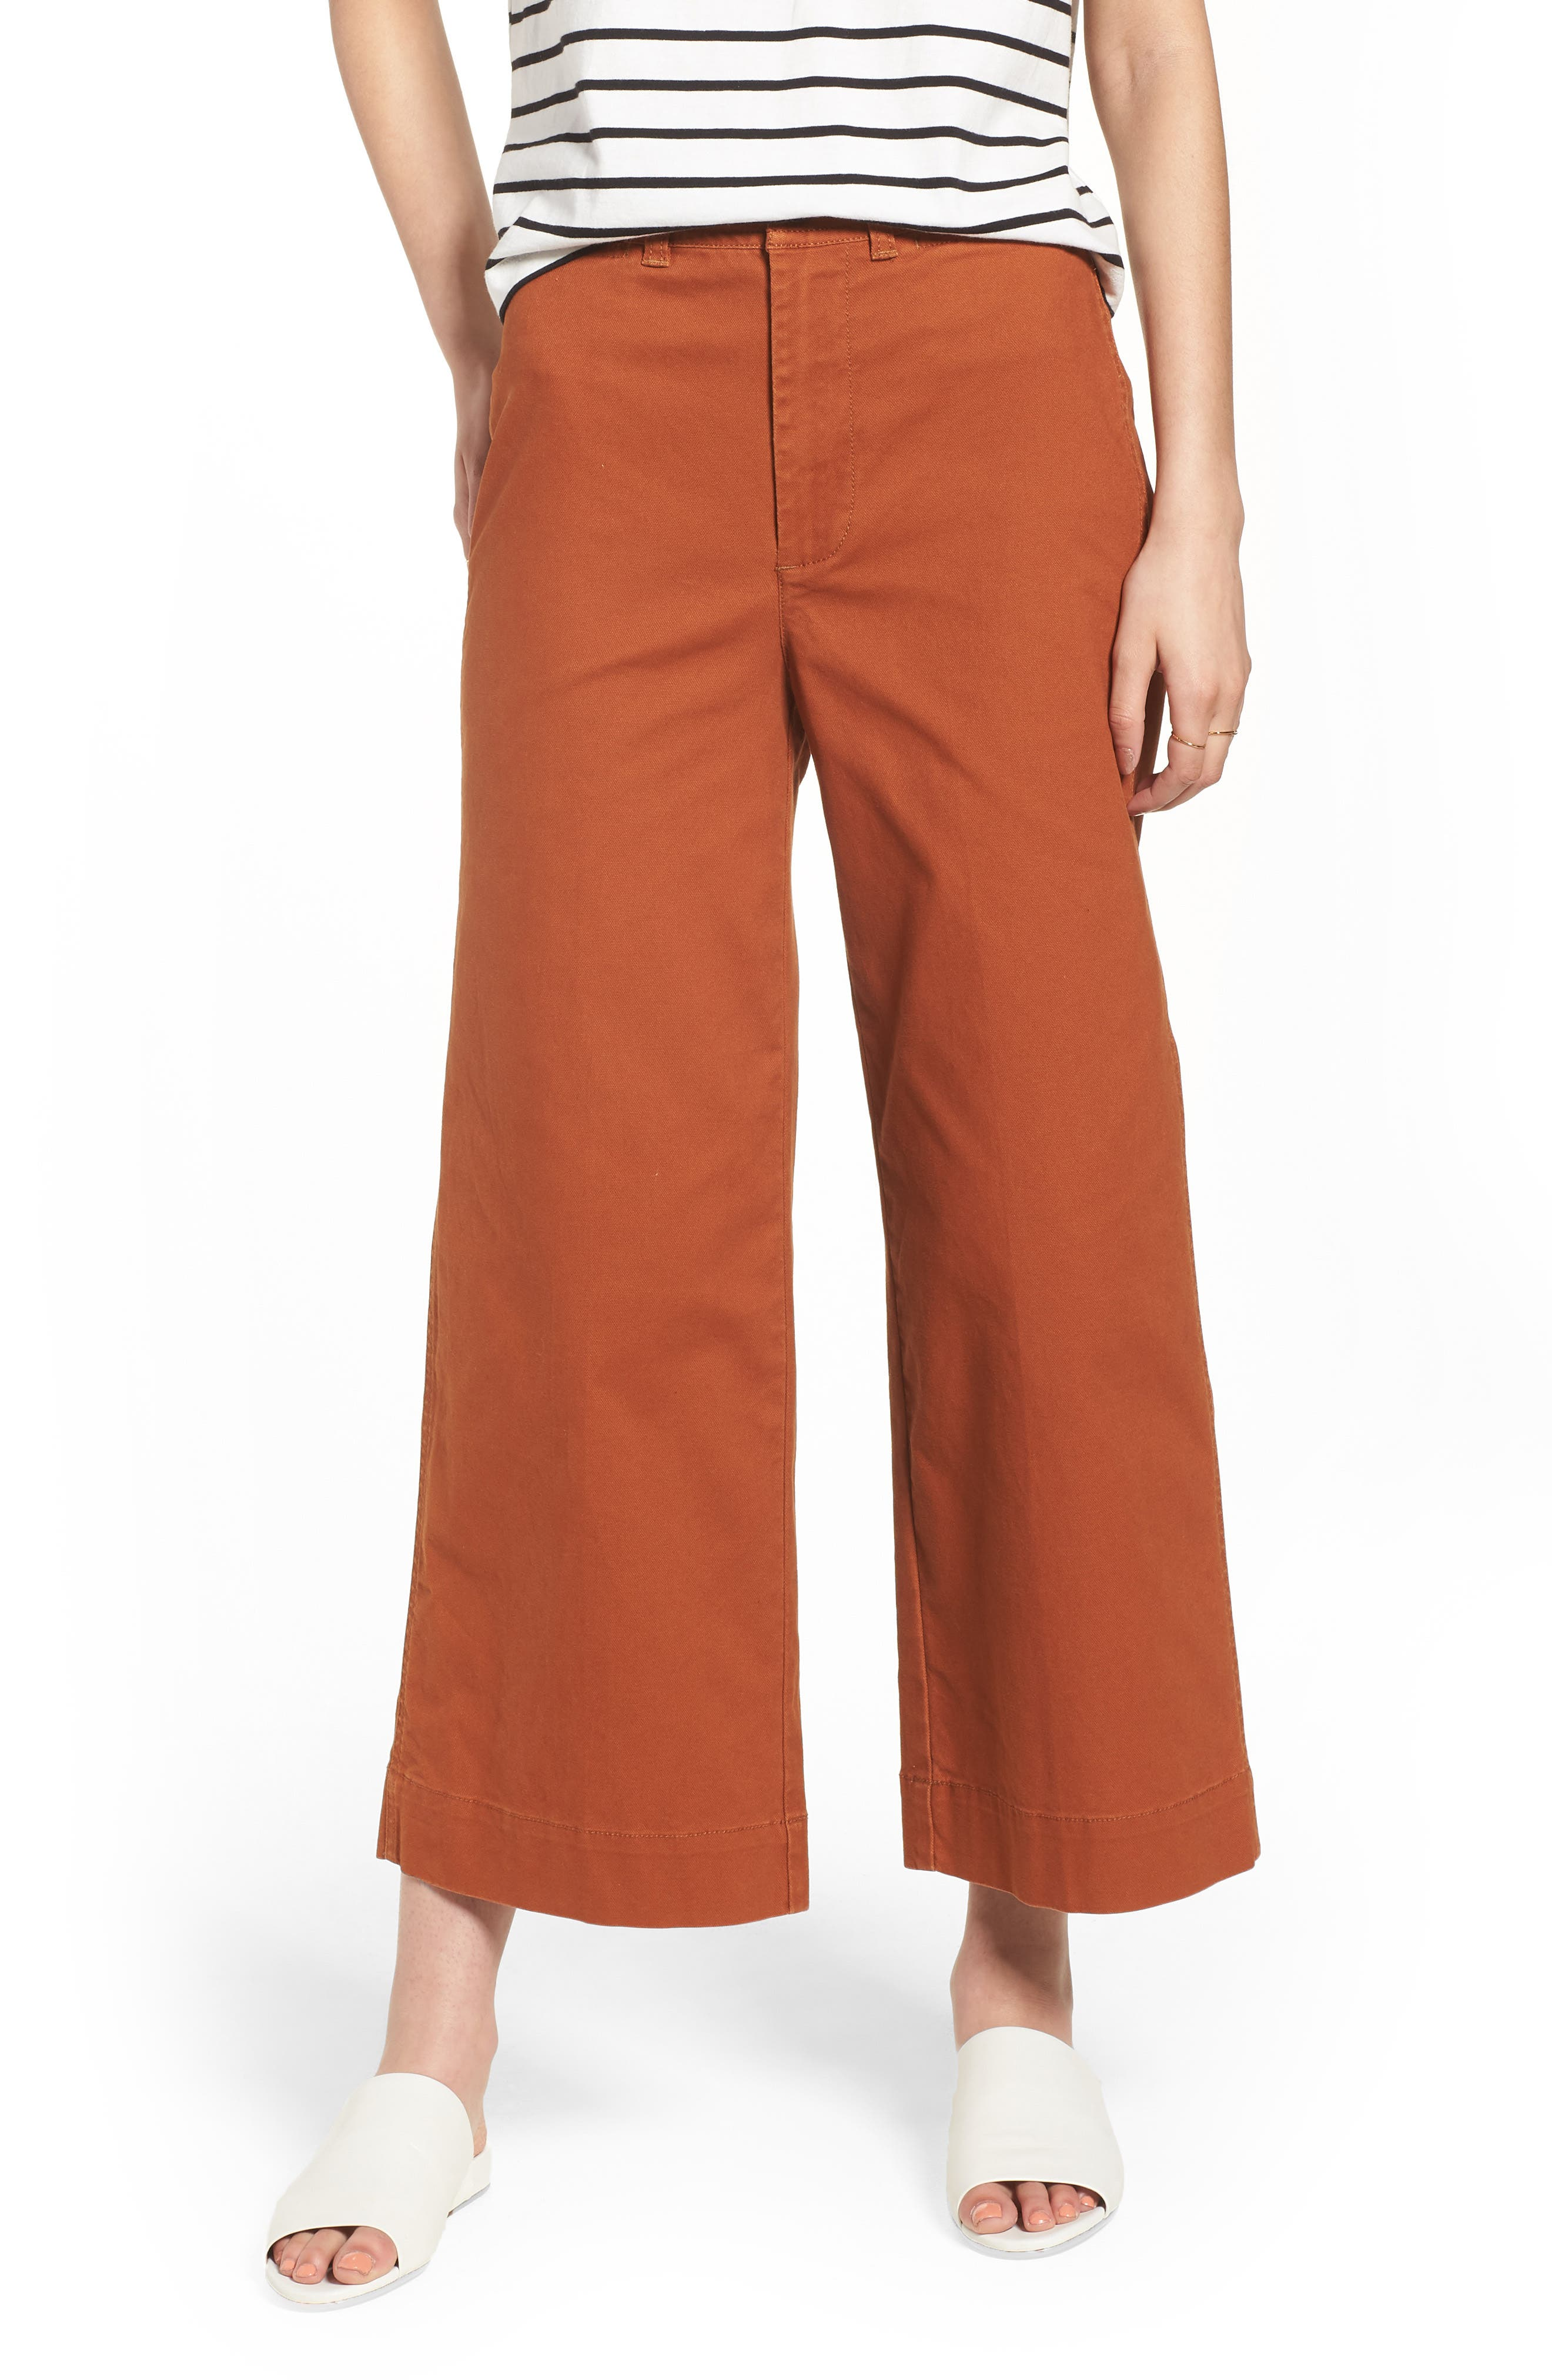 Emmett Crop Wide Leg Pants,                         Main,                         color,